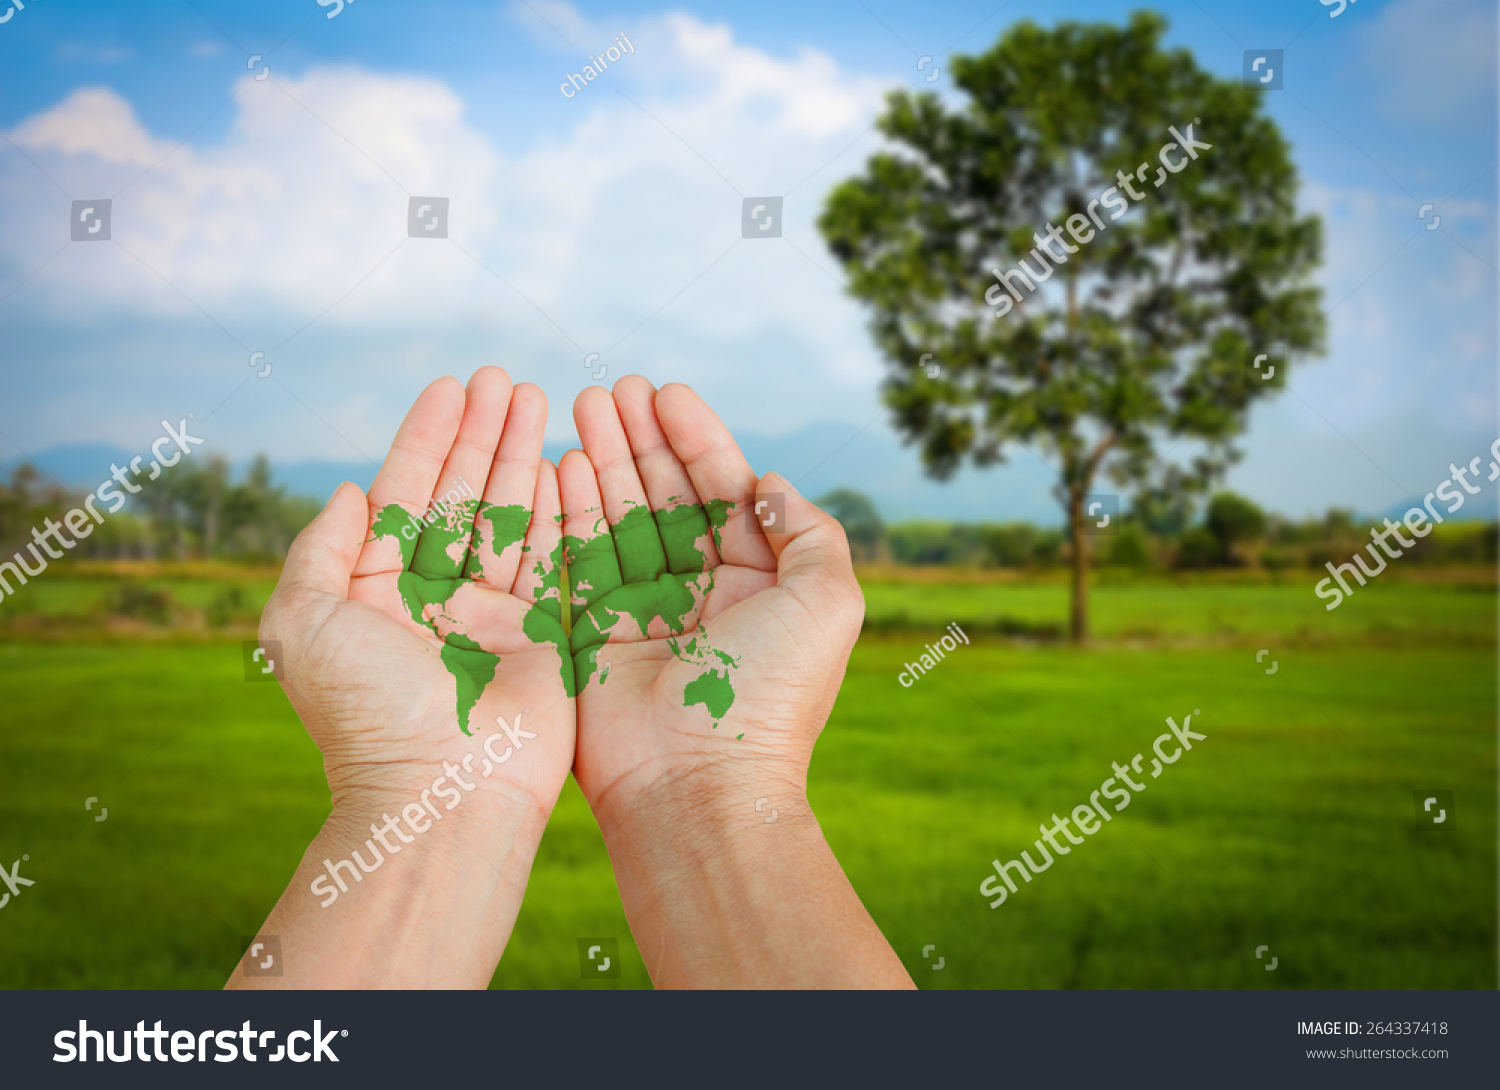 World map hand on green field stock photo royalty free 264337418 world map in hand on green field natural background gumiabroncs Image collections